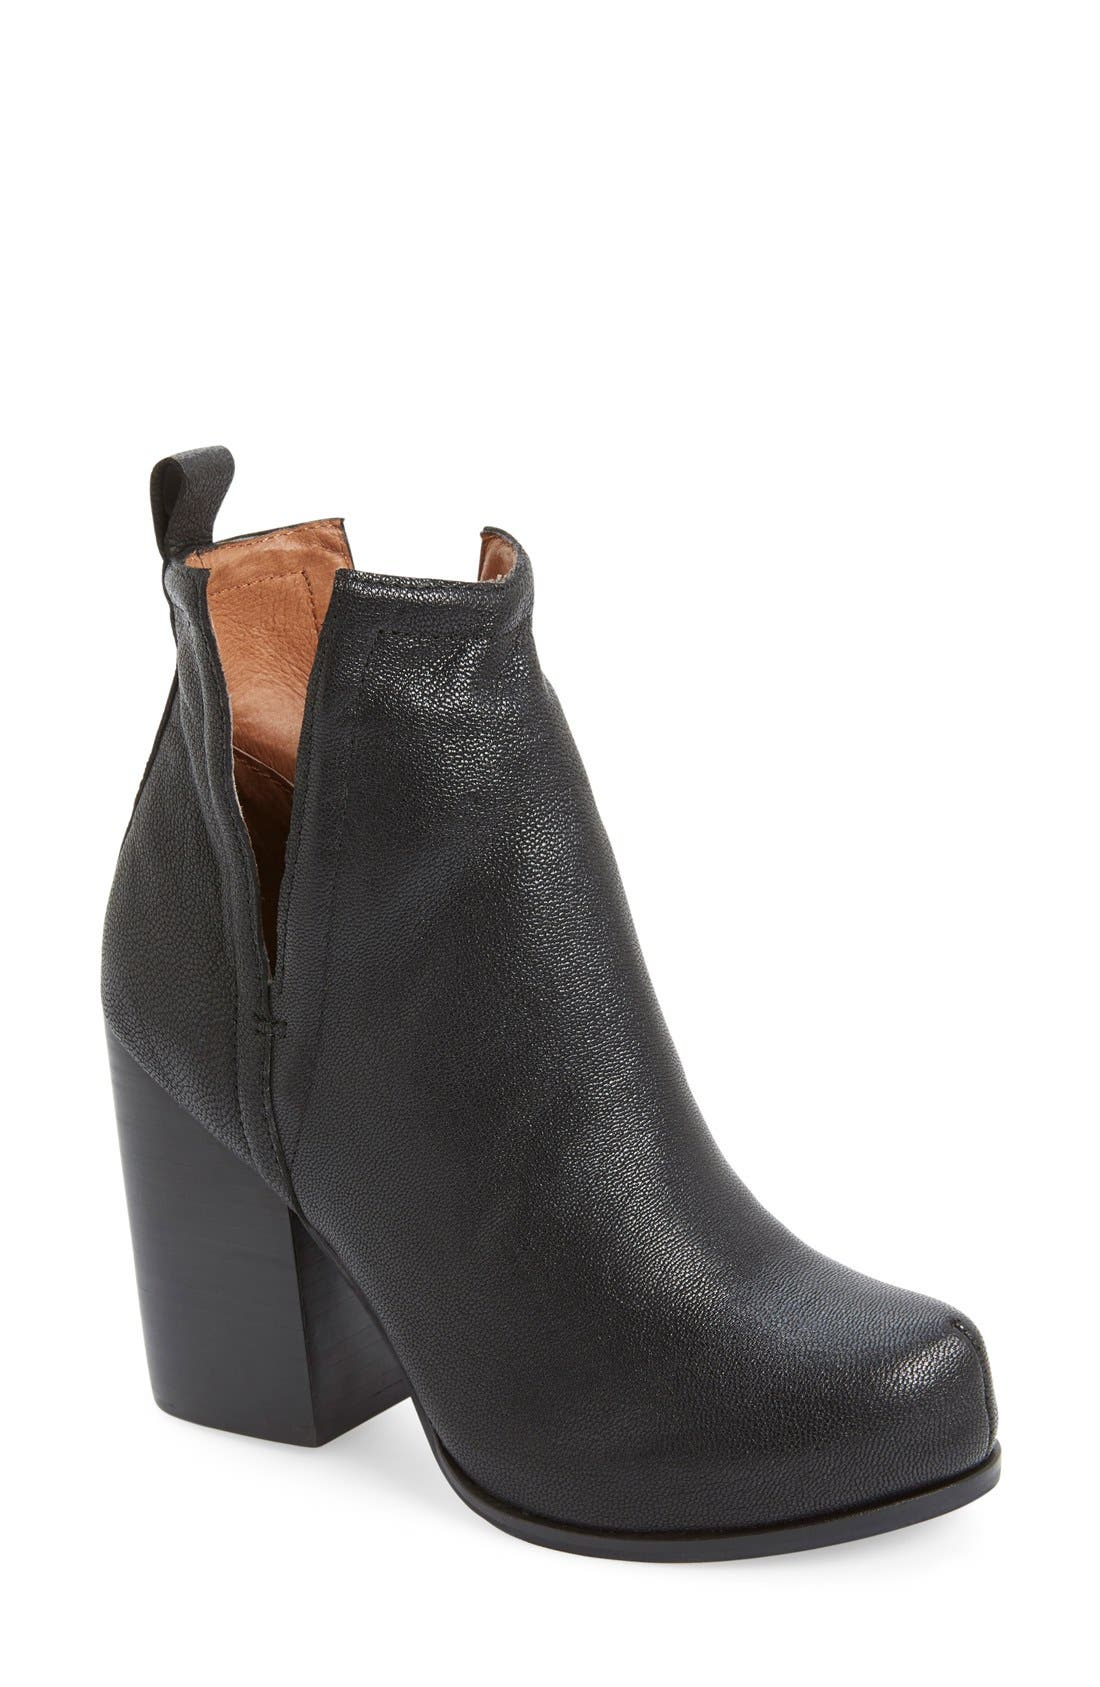 Alternate Image 1 Selected - Jeffrey Campbell 'Oshea' Bootie (Women)